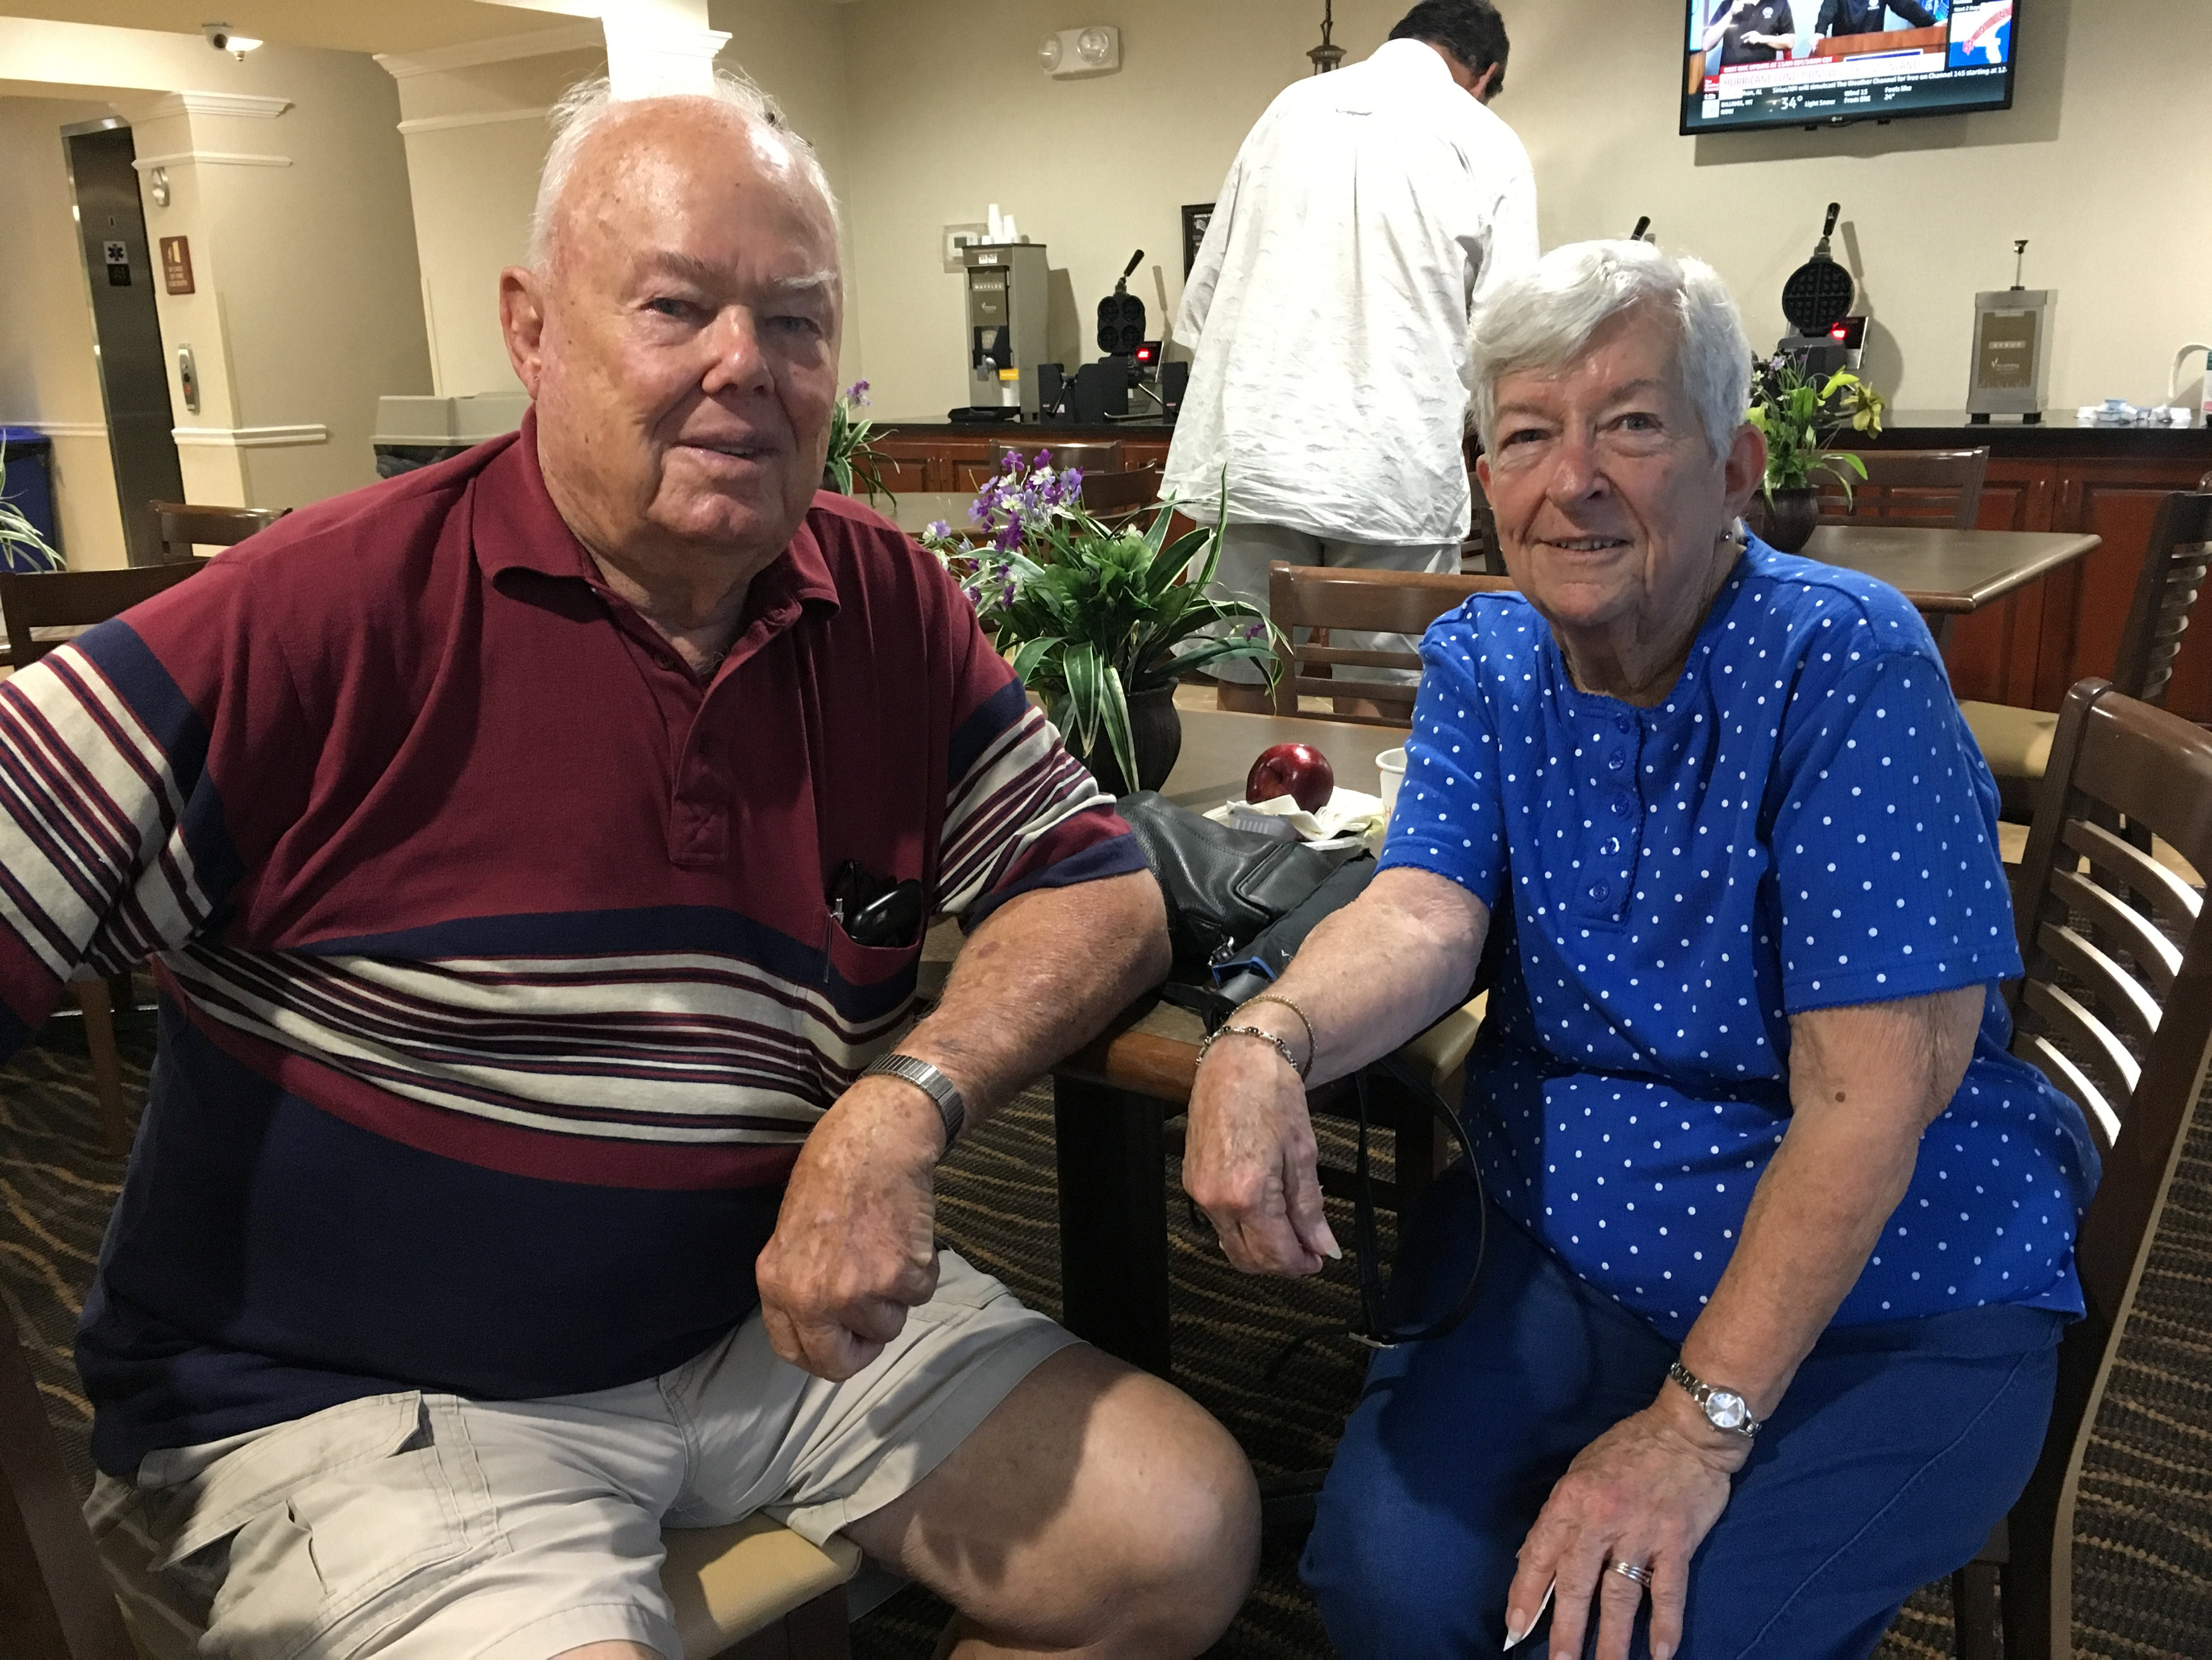 JW and Helen Neal sit in a hotel one mile from their beachfront house due to Hurricane Michael, in Panama City, Florida, U.S., October 10, 2018. REUTERS/Rod Nickel